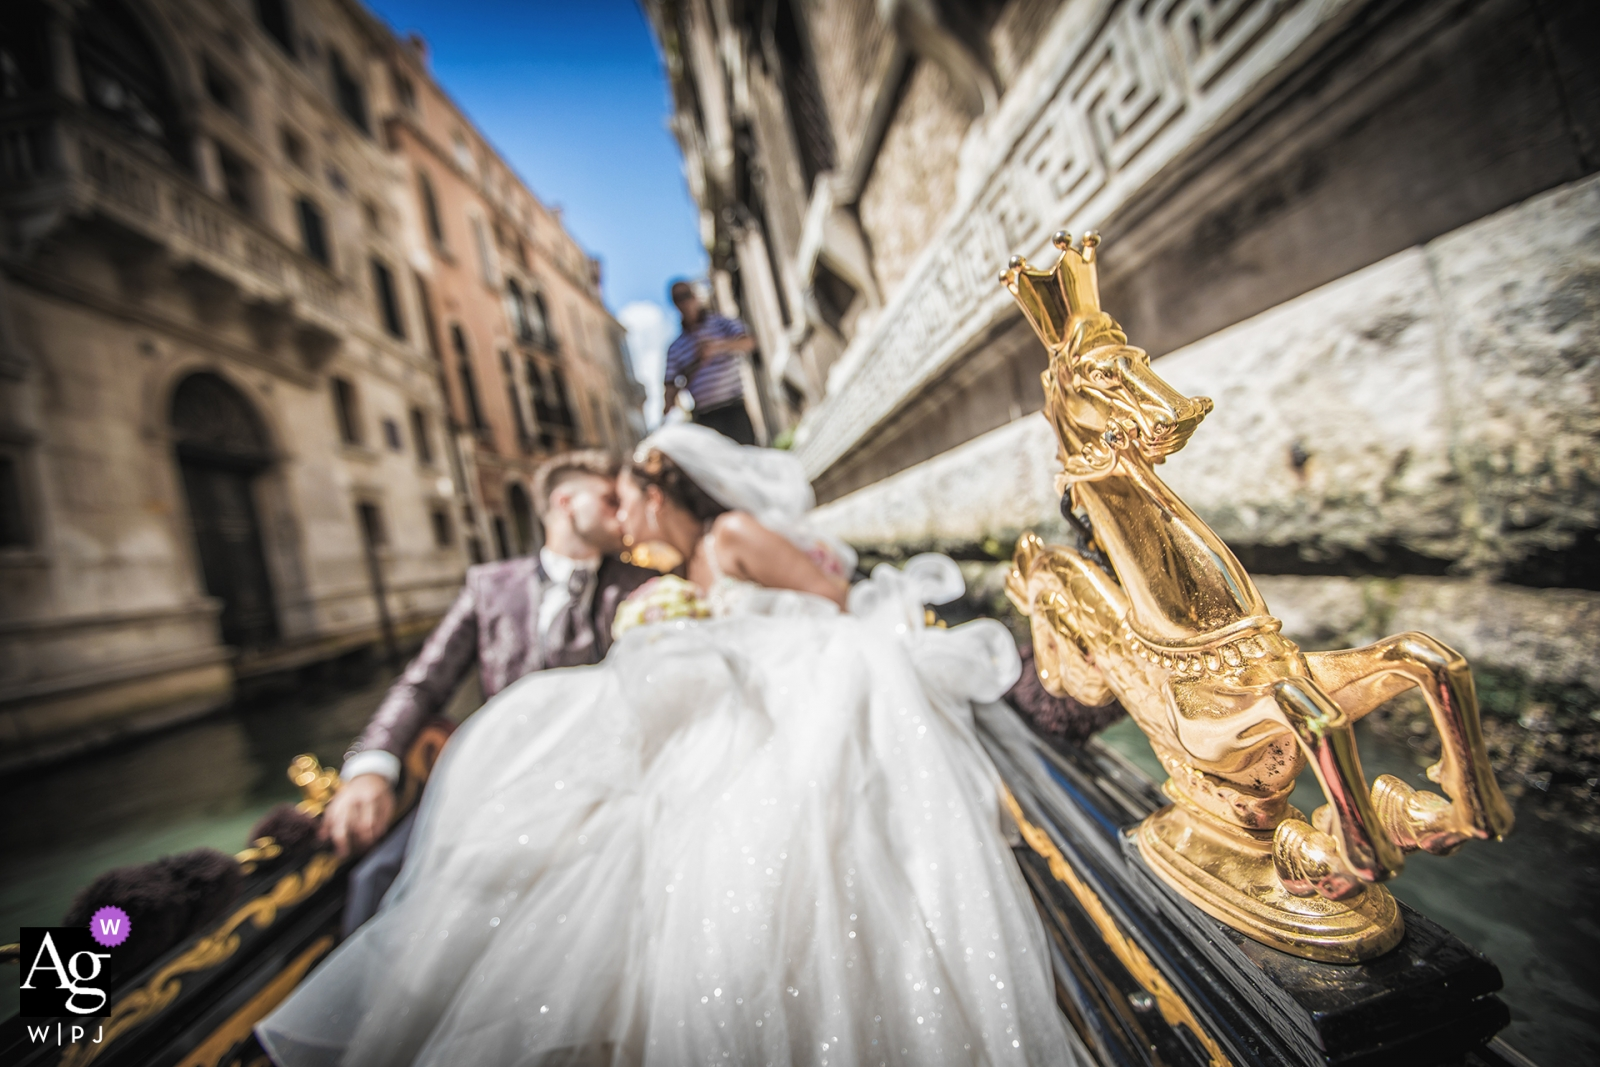 Luca Fabbian is an artistic wedding photographer for Vicenza